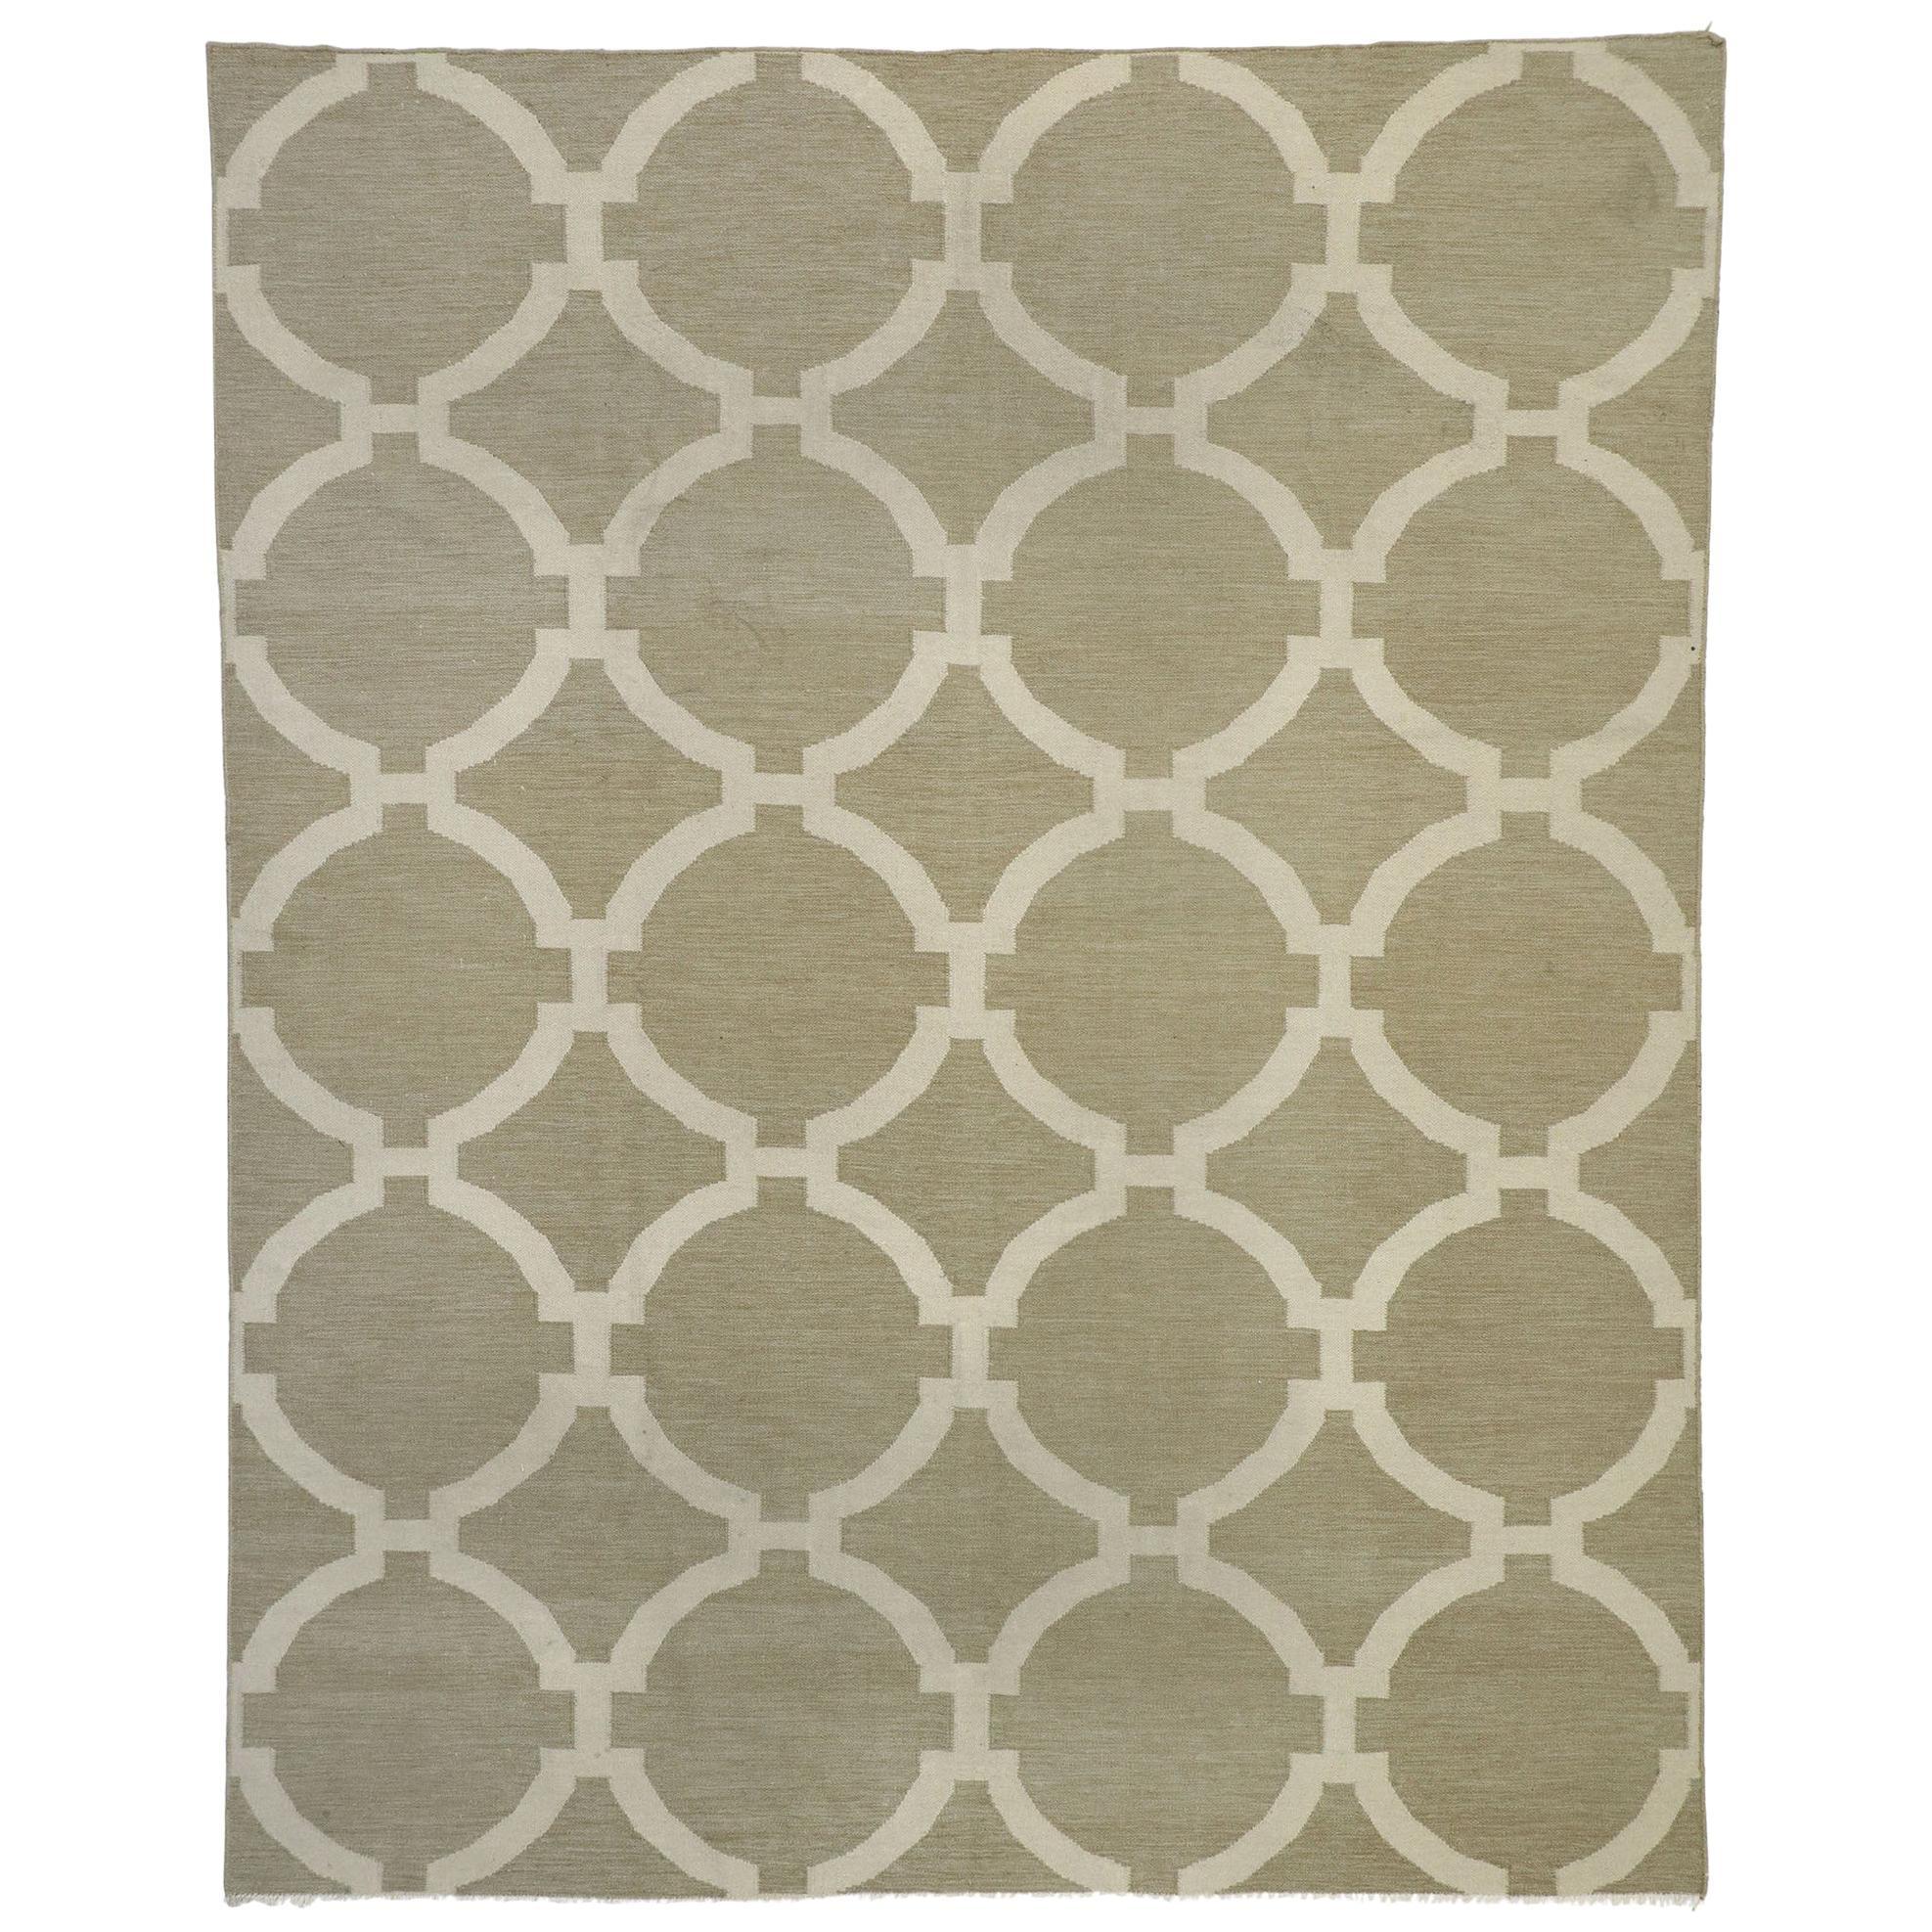 Vintage Kilim Circle Trellis Rug with Geometric Pattern and Transitional Style